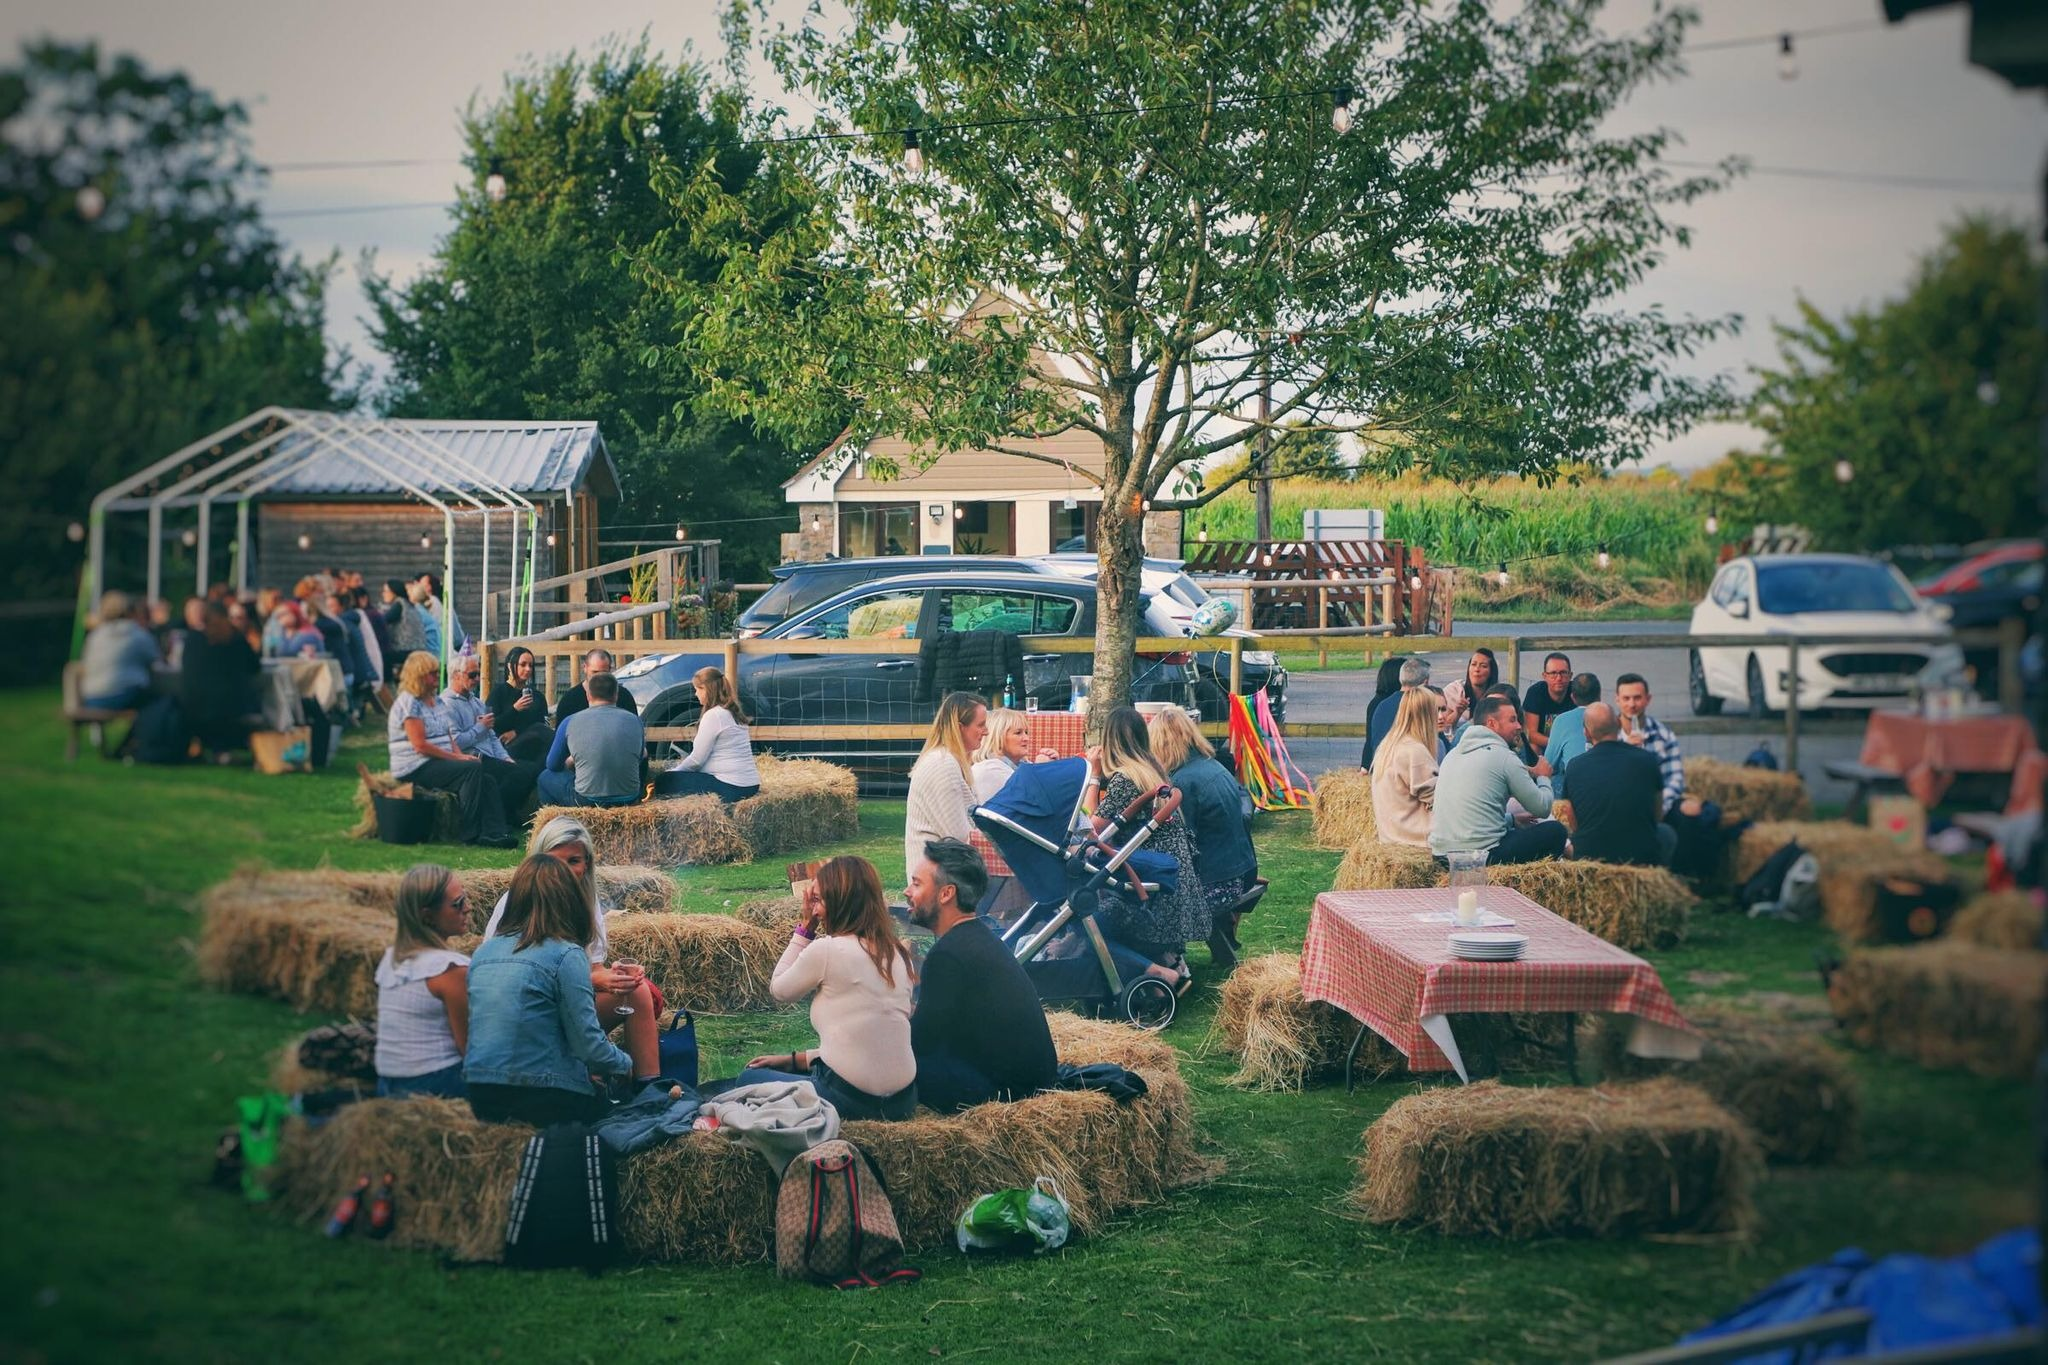 FAMILY FIREPIT NIGHT Friday 24th September 6pm - 9pm.